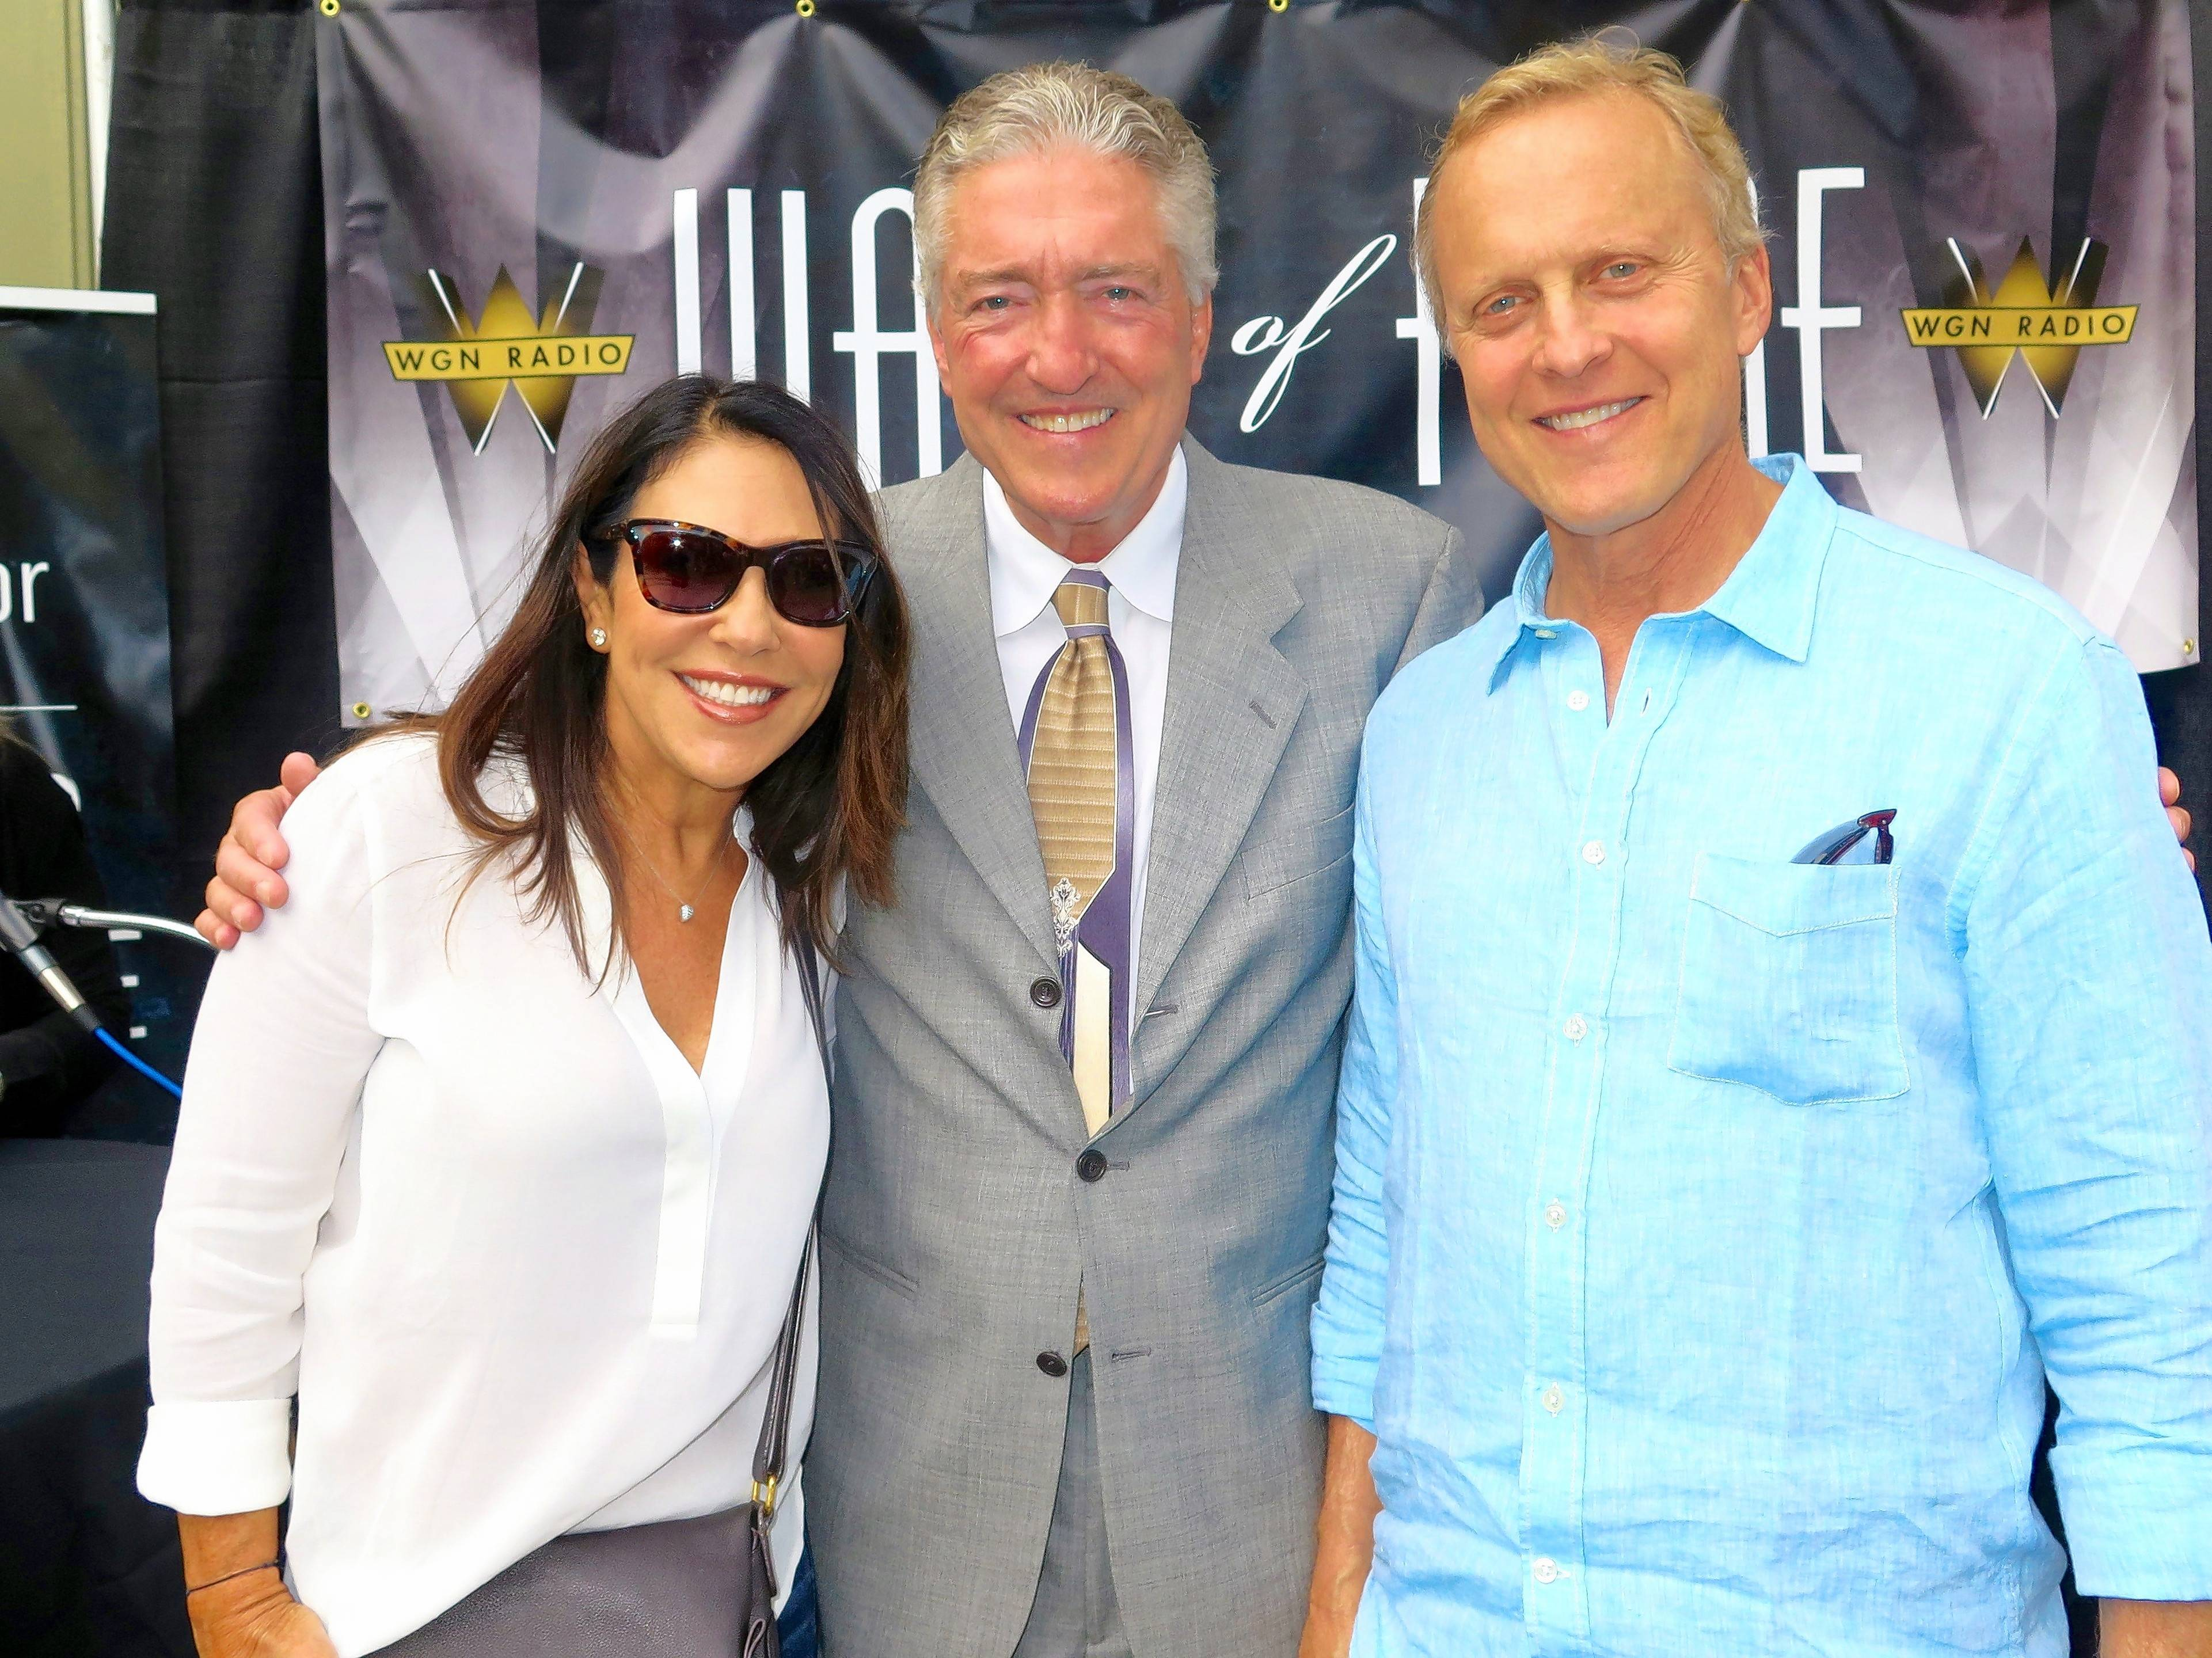 Cubs radio broadcaster Pat Hughes celebrates his WGN Radio Walk of Fame induction in 2014 with Bob Sirott and wife Marianne Murciano.